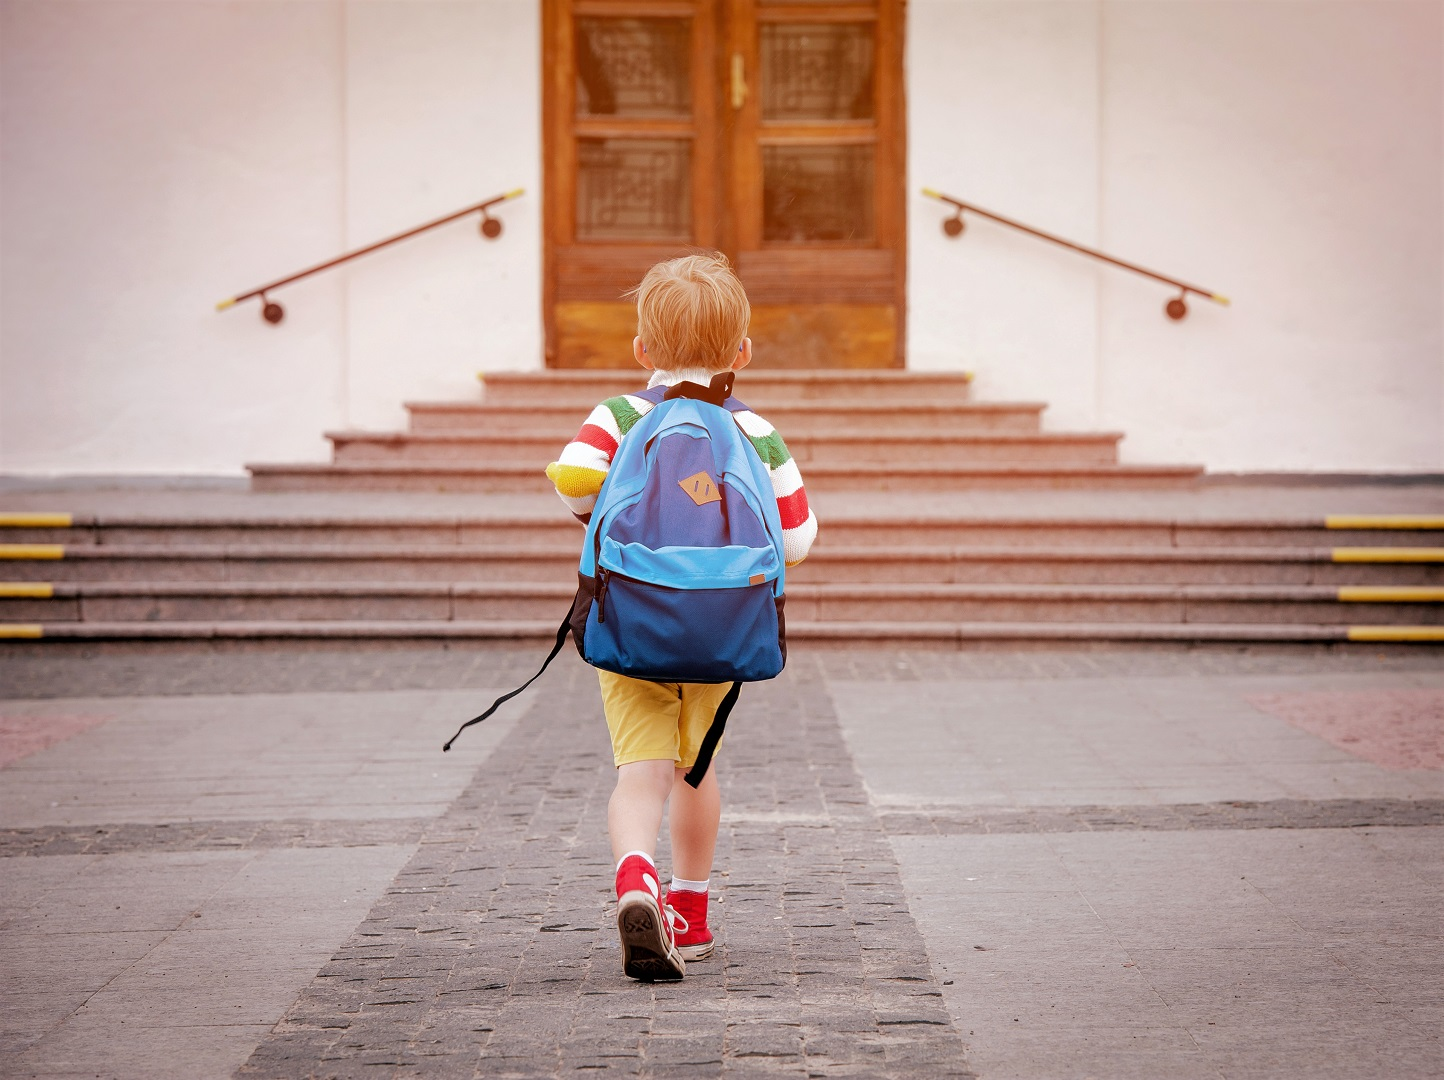 When Should You Let Your Child Walk to School Alone?